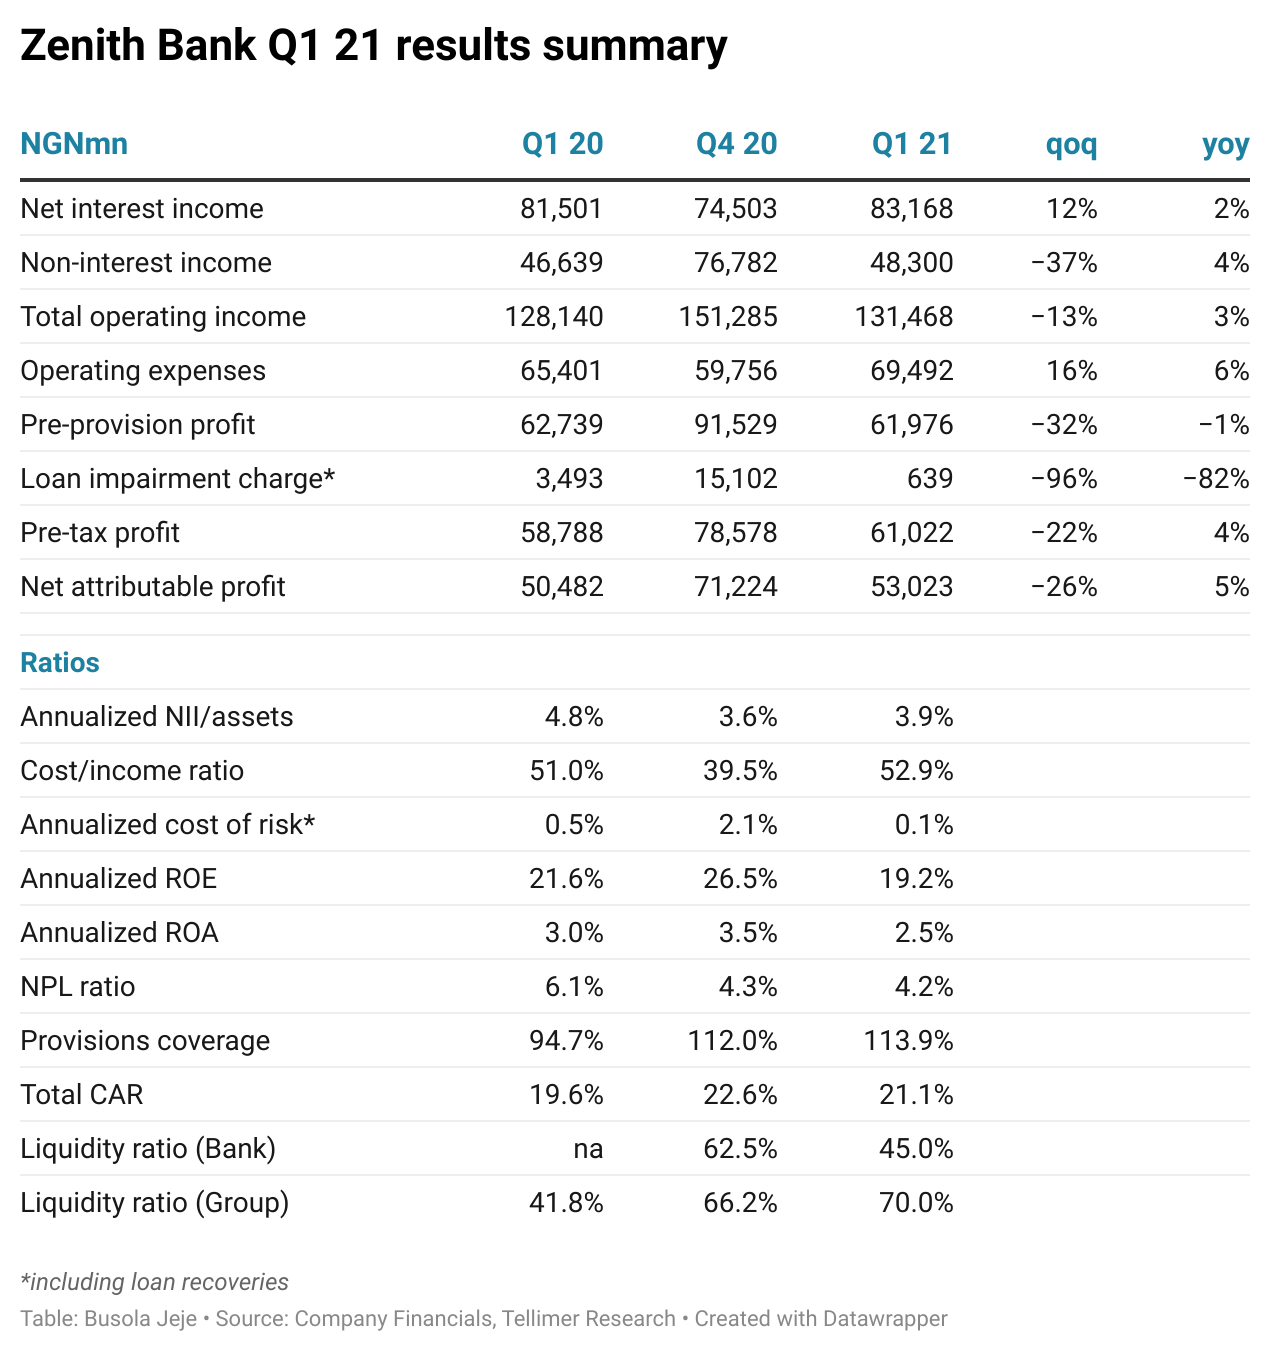 Zenith Bank Q1 21 results summary